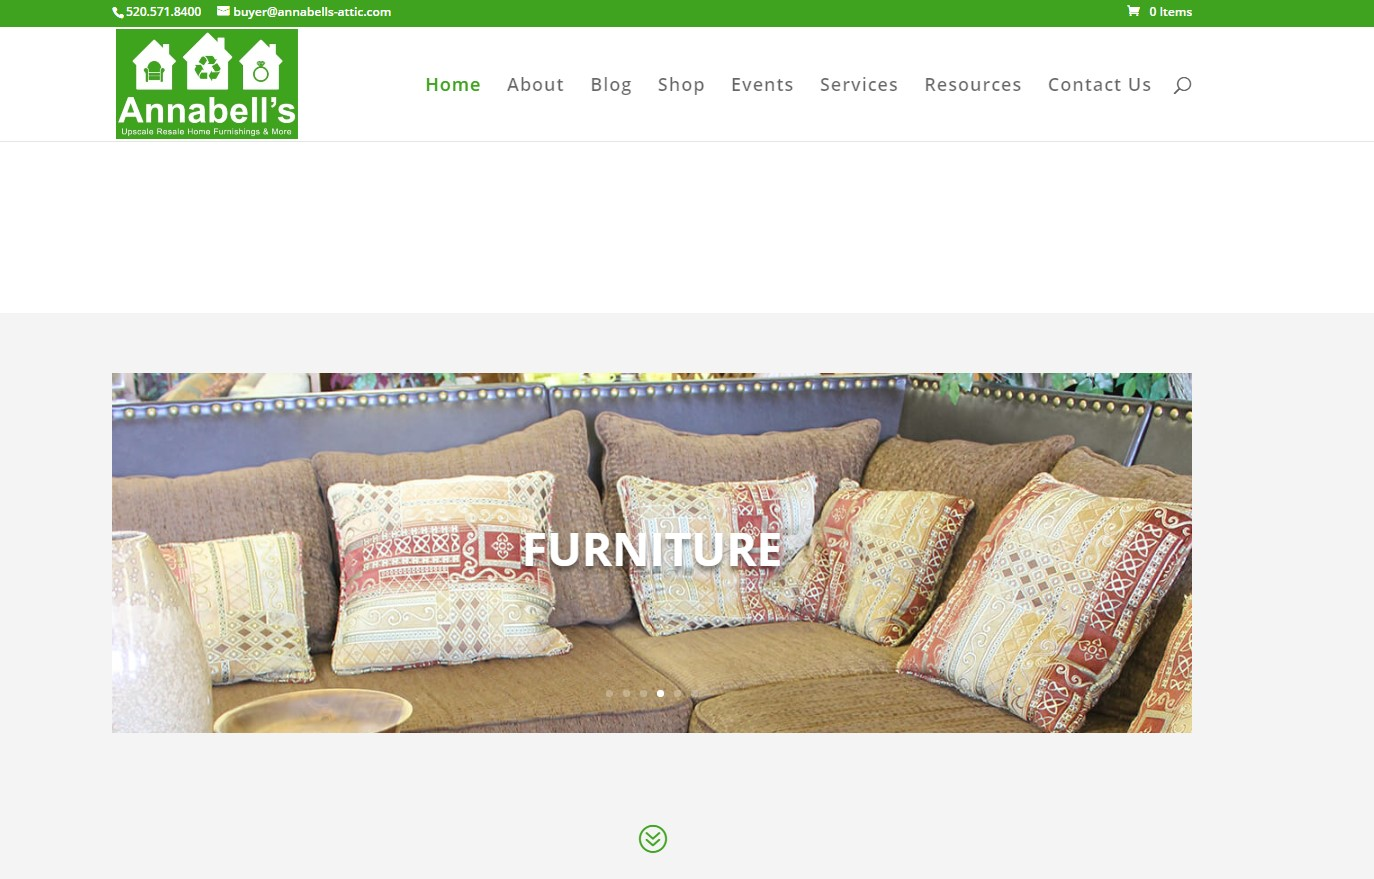 Annabell's Attic home page